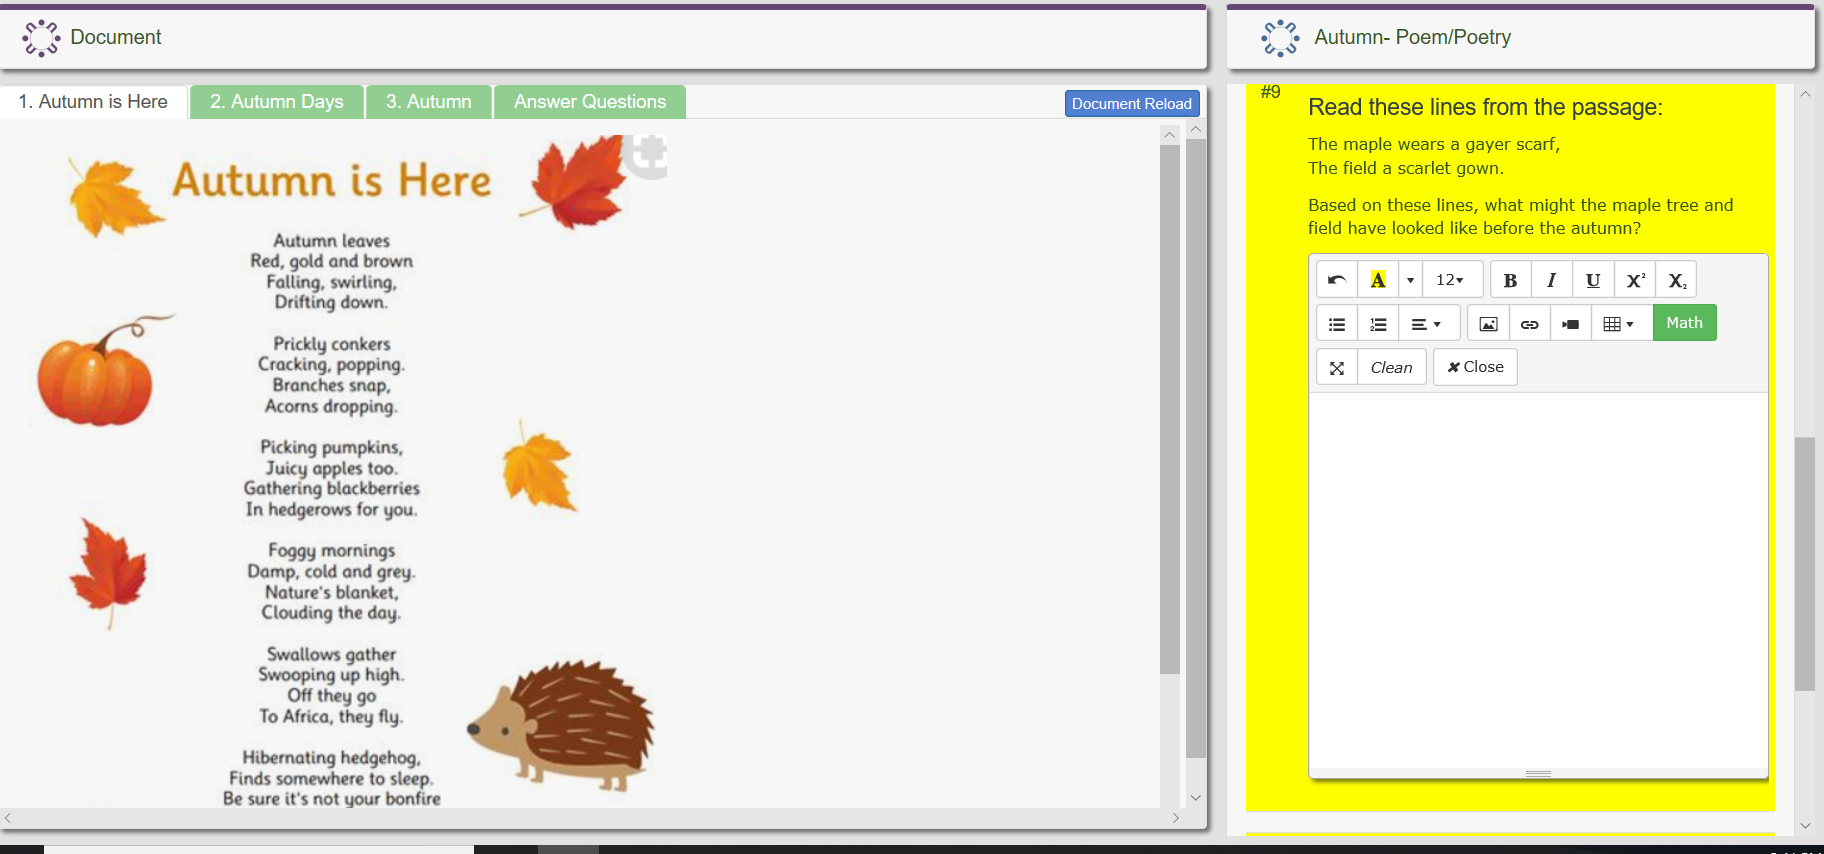 Extended and Constructed response items allow students to increase endurance and fluency answering in the HTML and math editor. Teachers can quickly assign earned points to each item.